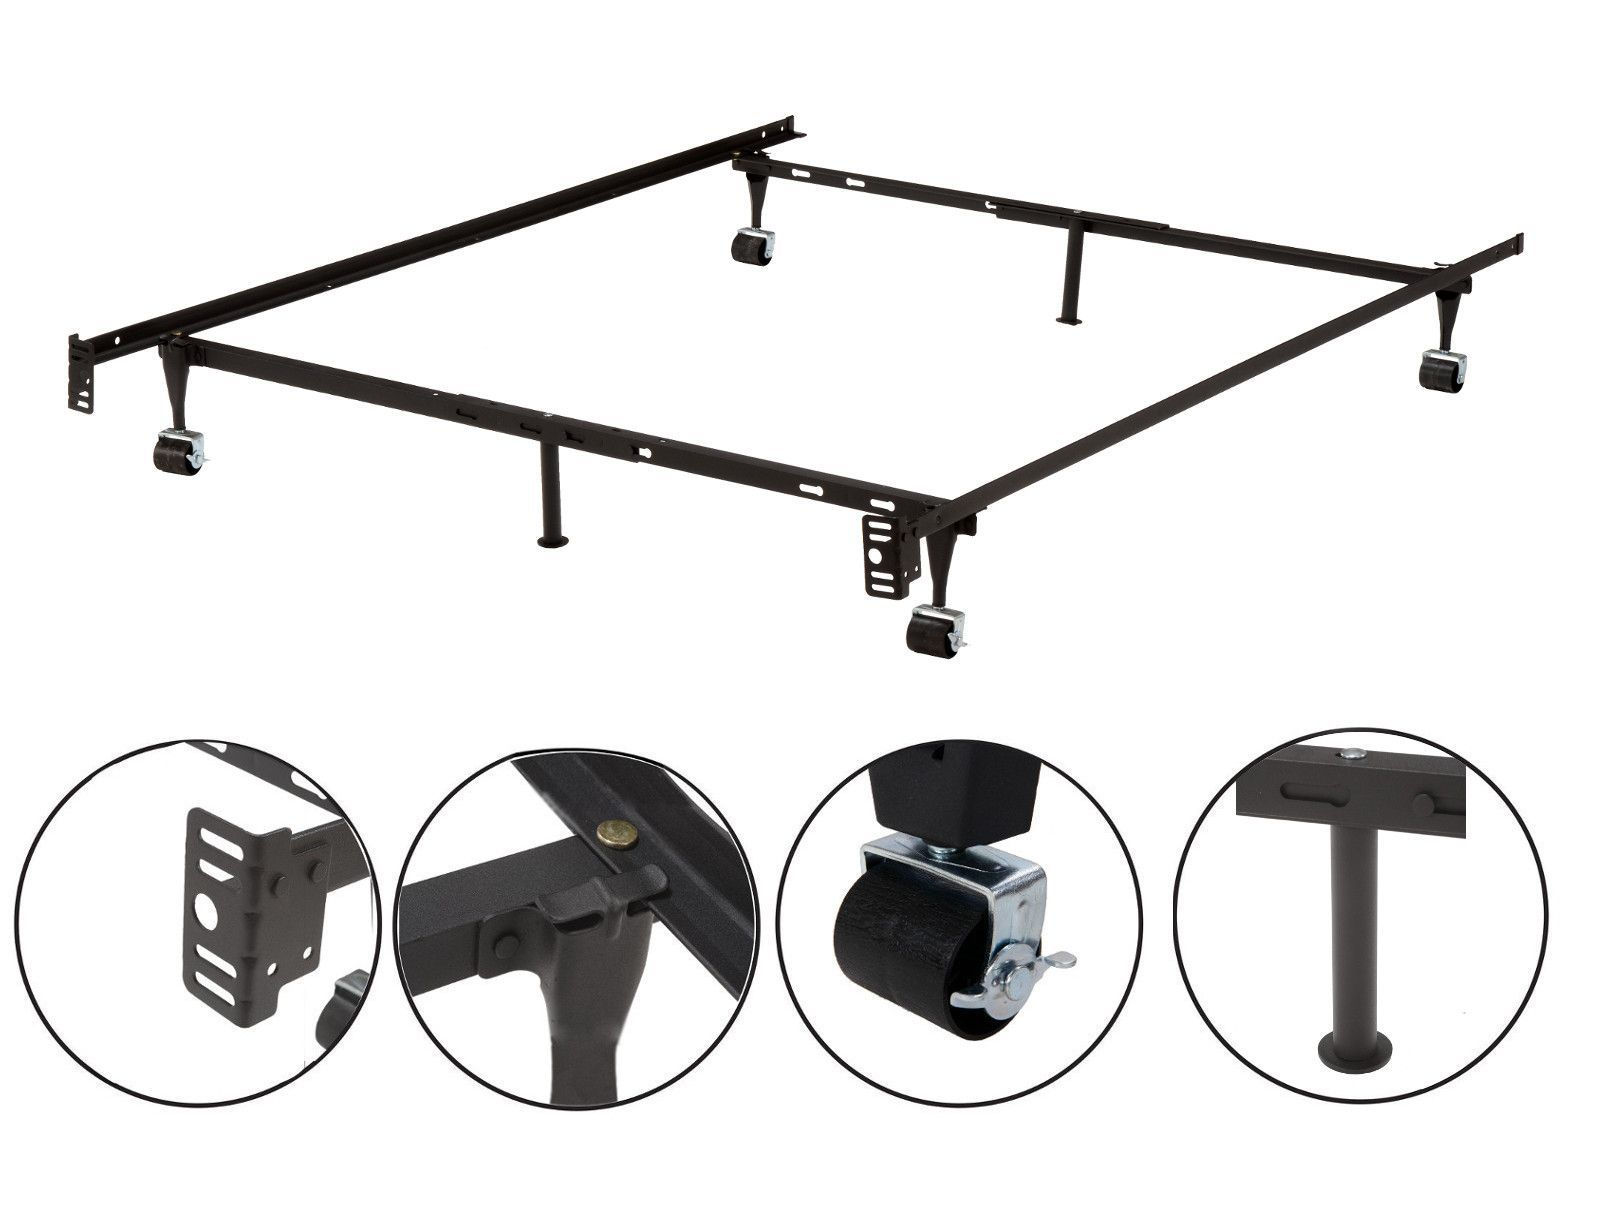 Metal Adjustable Queen, Full, Full XL, Twin, Twin XL, Heavy Duty Bed Frame With 6 Legs, 2 Center Support, 2 Rug Rollers and 2 Locking Wheels